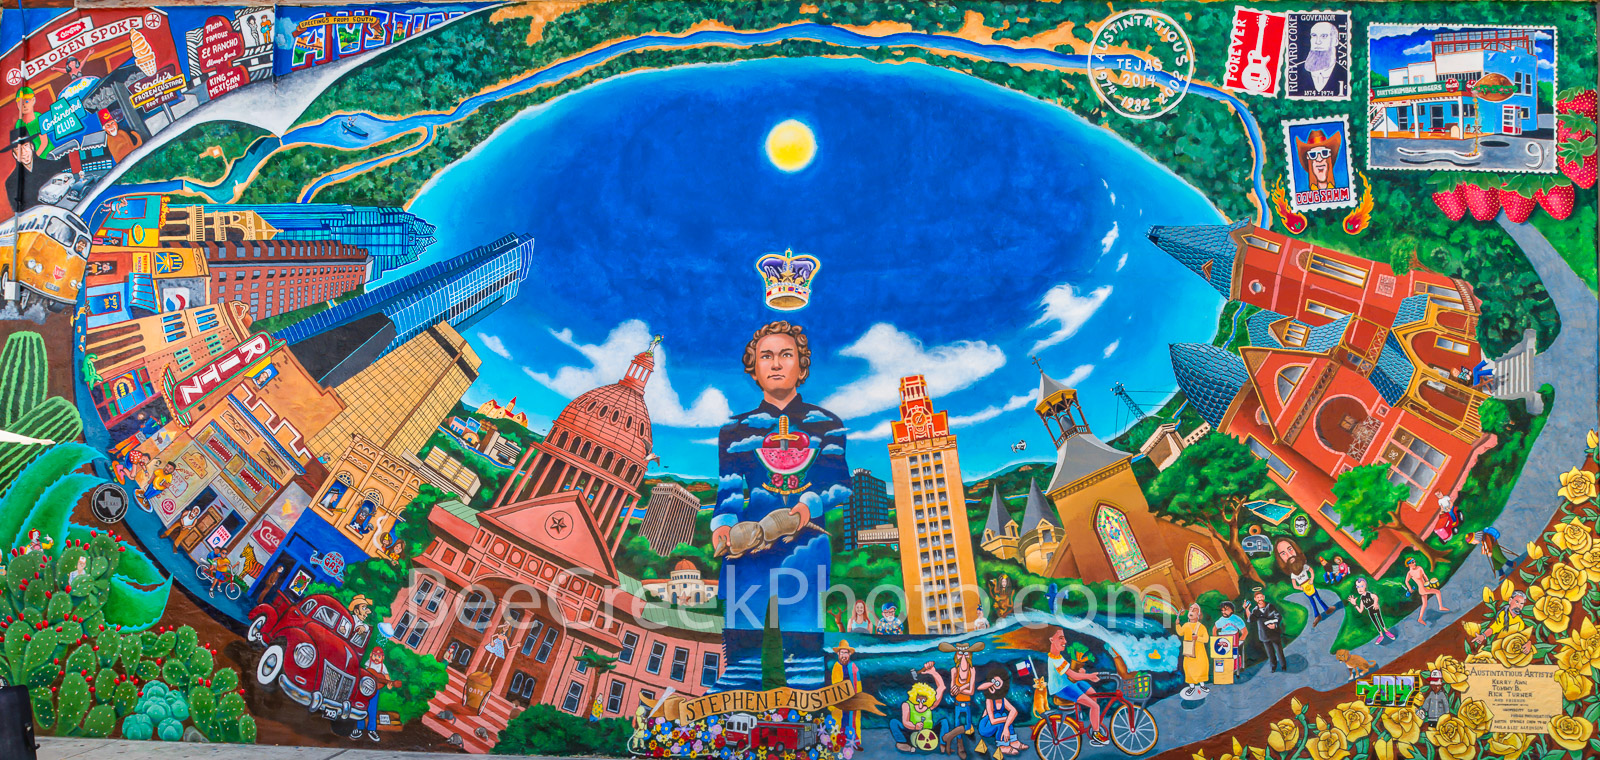 Austin Texas Austintatious Mural-  The  Mural called Austintatious is located off of Guadalupe or the Drag as many call it. In...